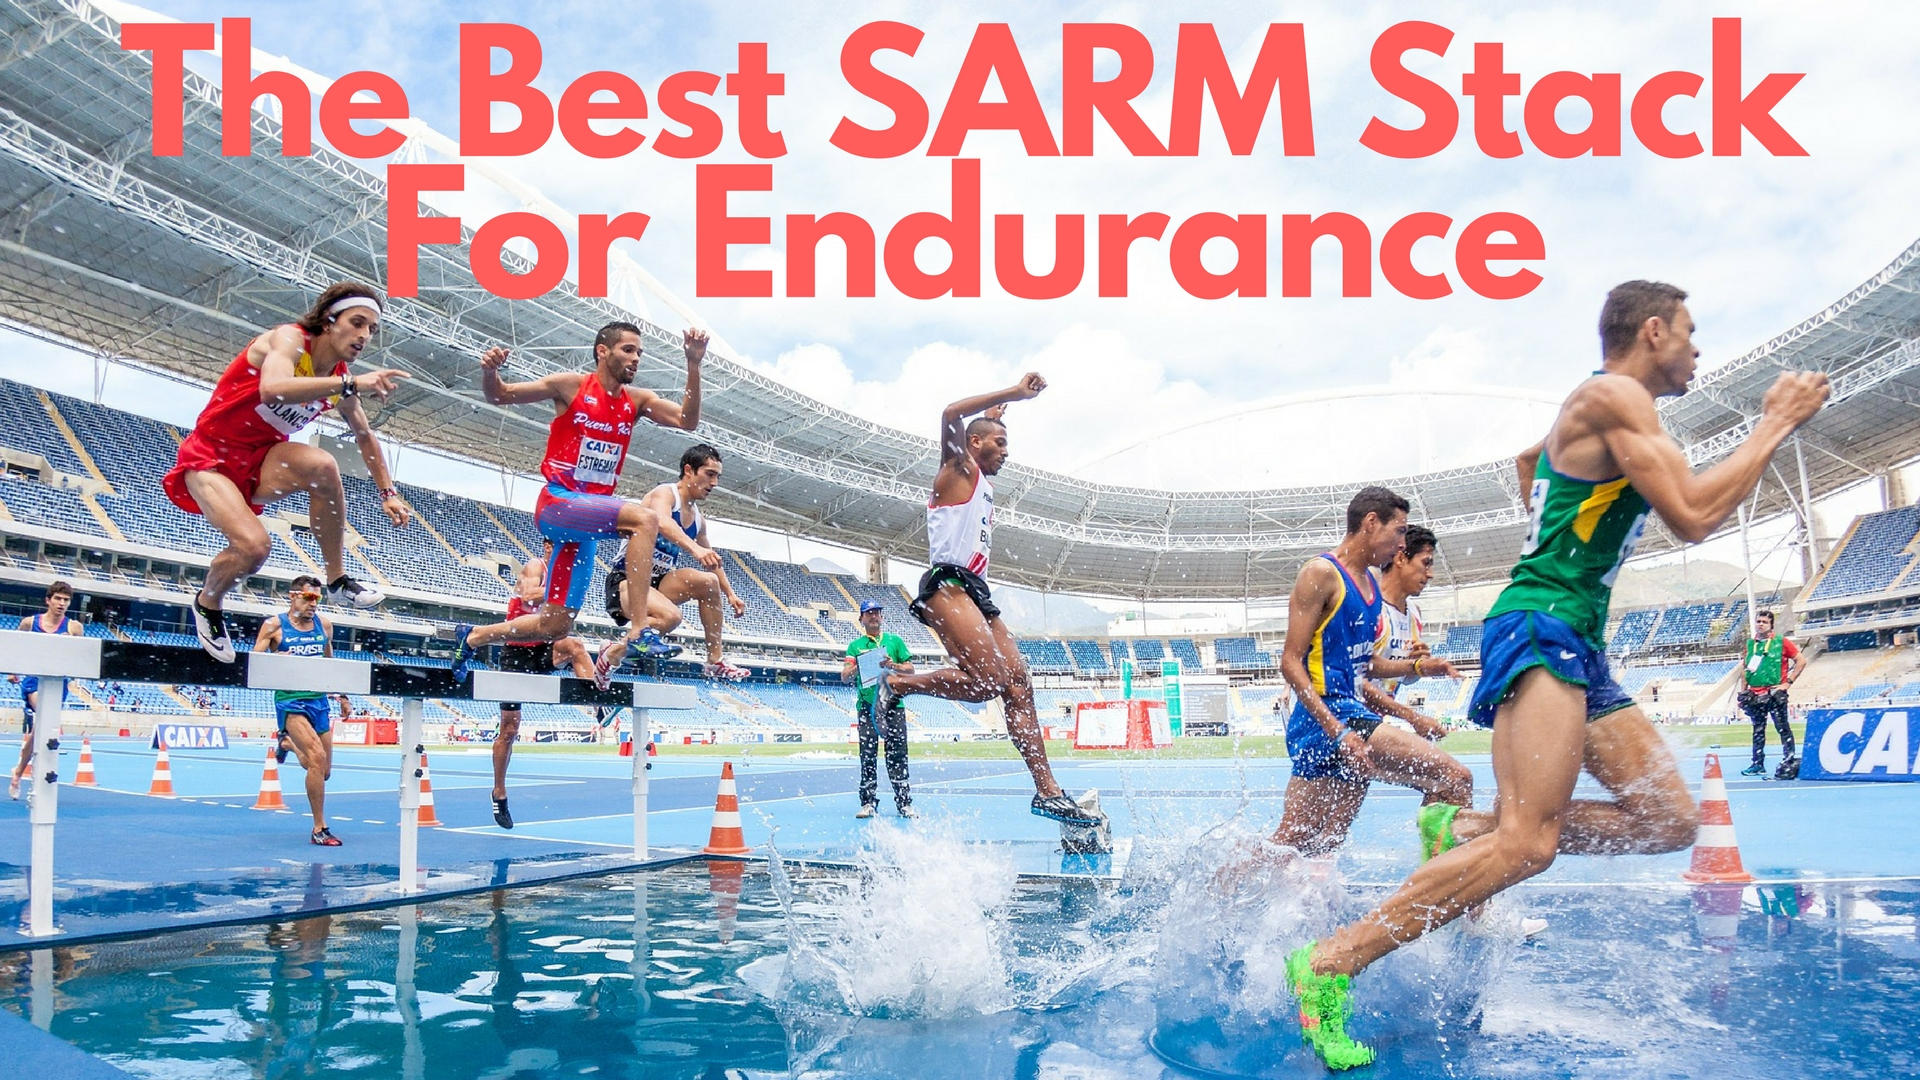 The Best SARMs For Endurance - Misconceptions And Real World